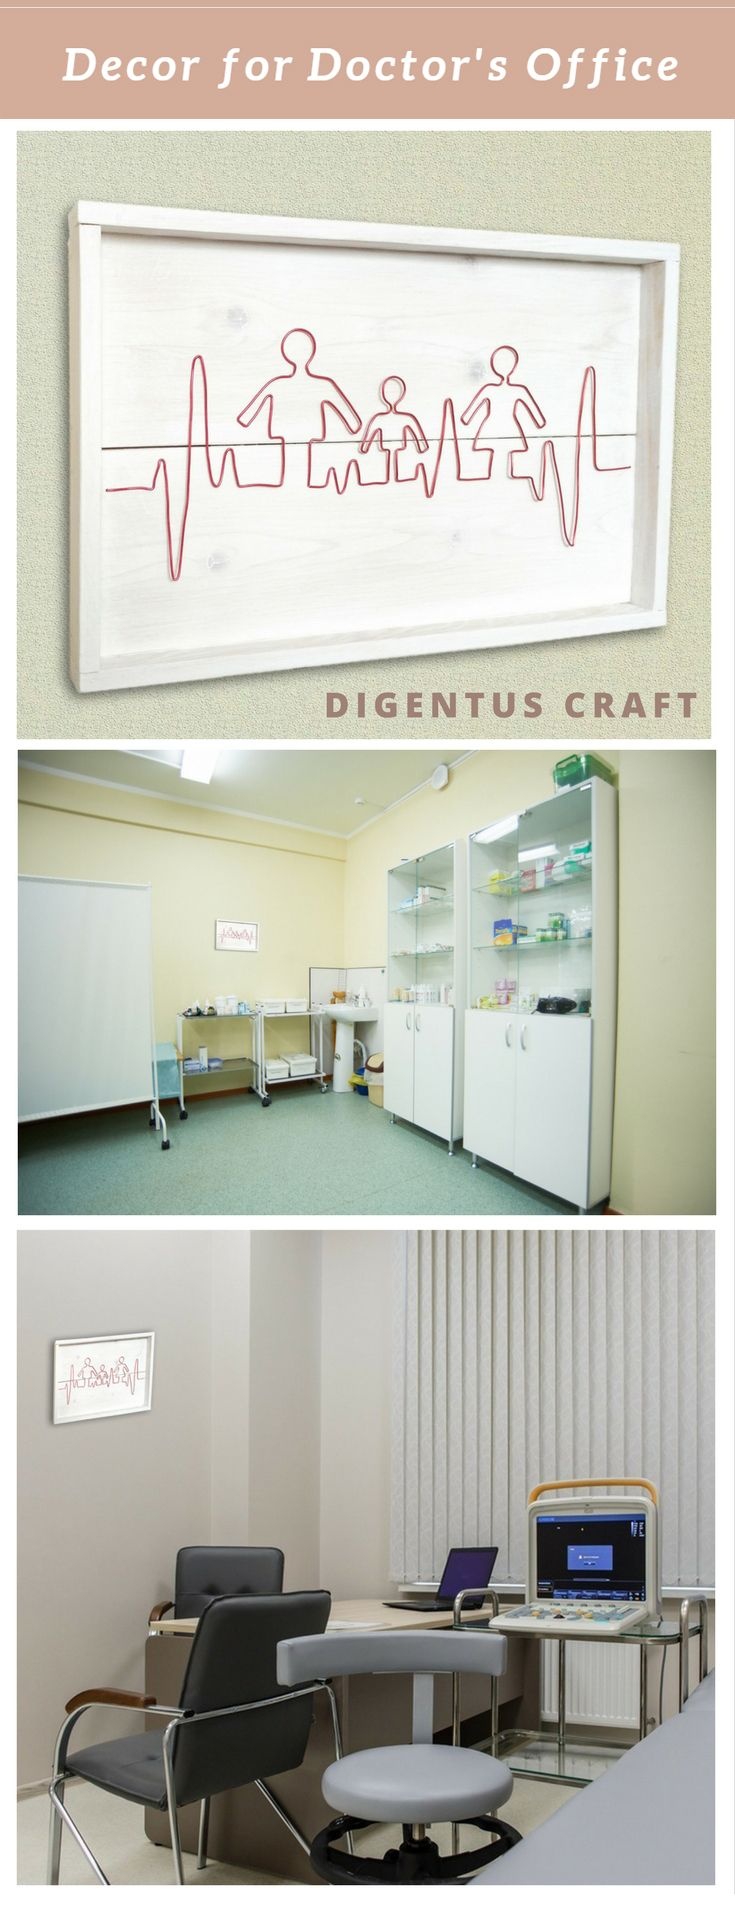 Doctor Office Decor Gift For Doctor Medical Office Gift Medical Student Graduation Gift Medica With Images Medical Office Decor Waiting Room Decor Doctors Office Decor